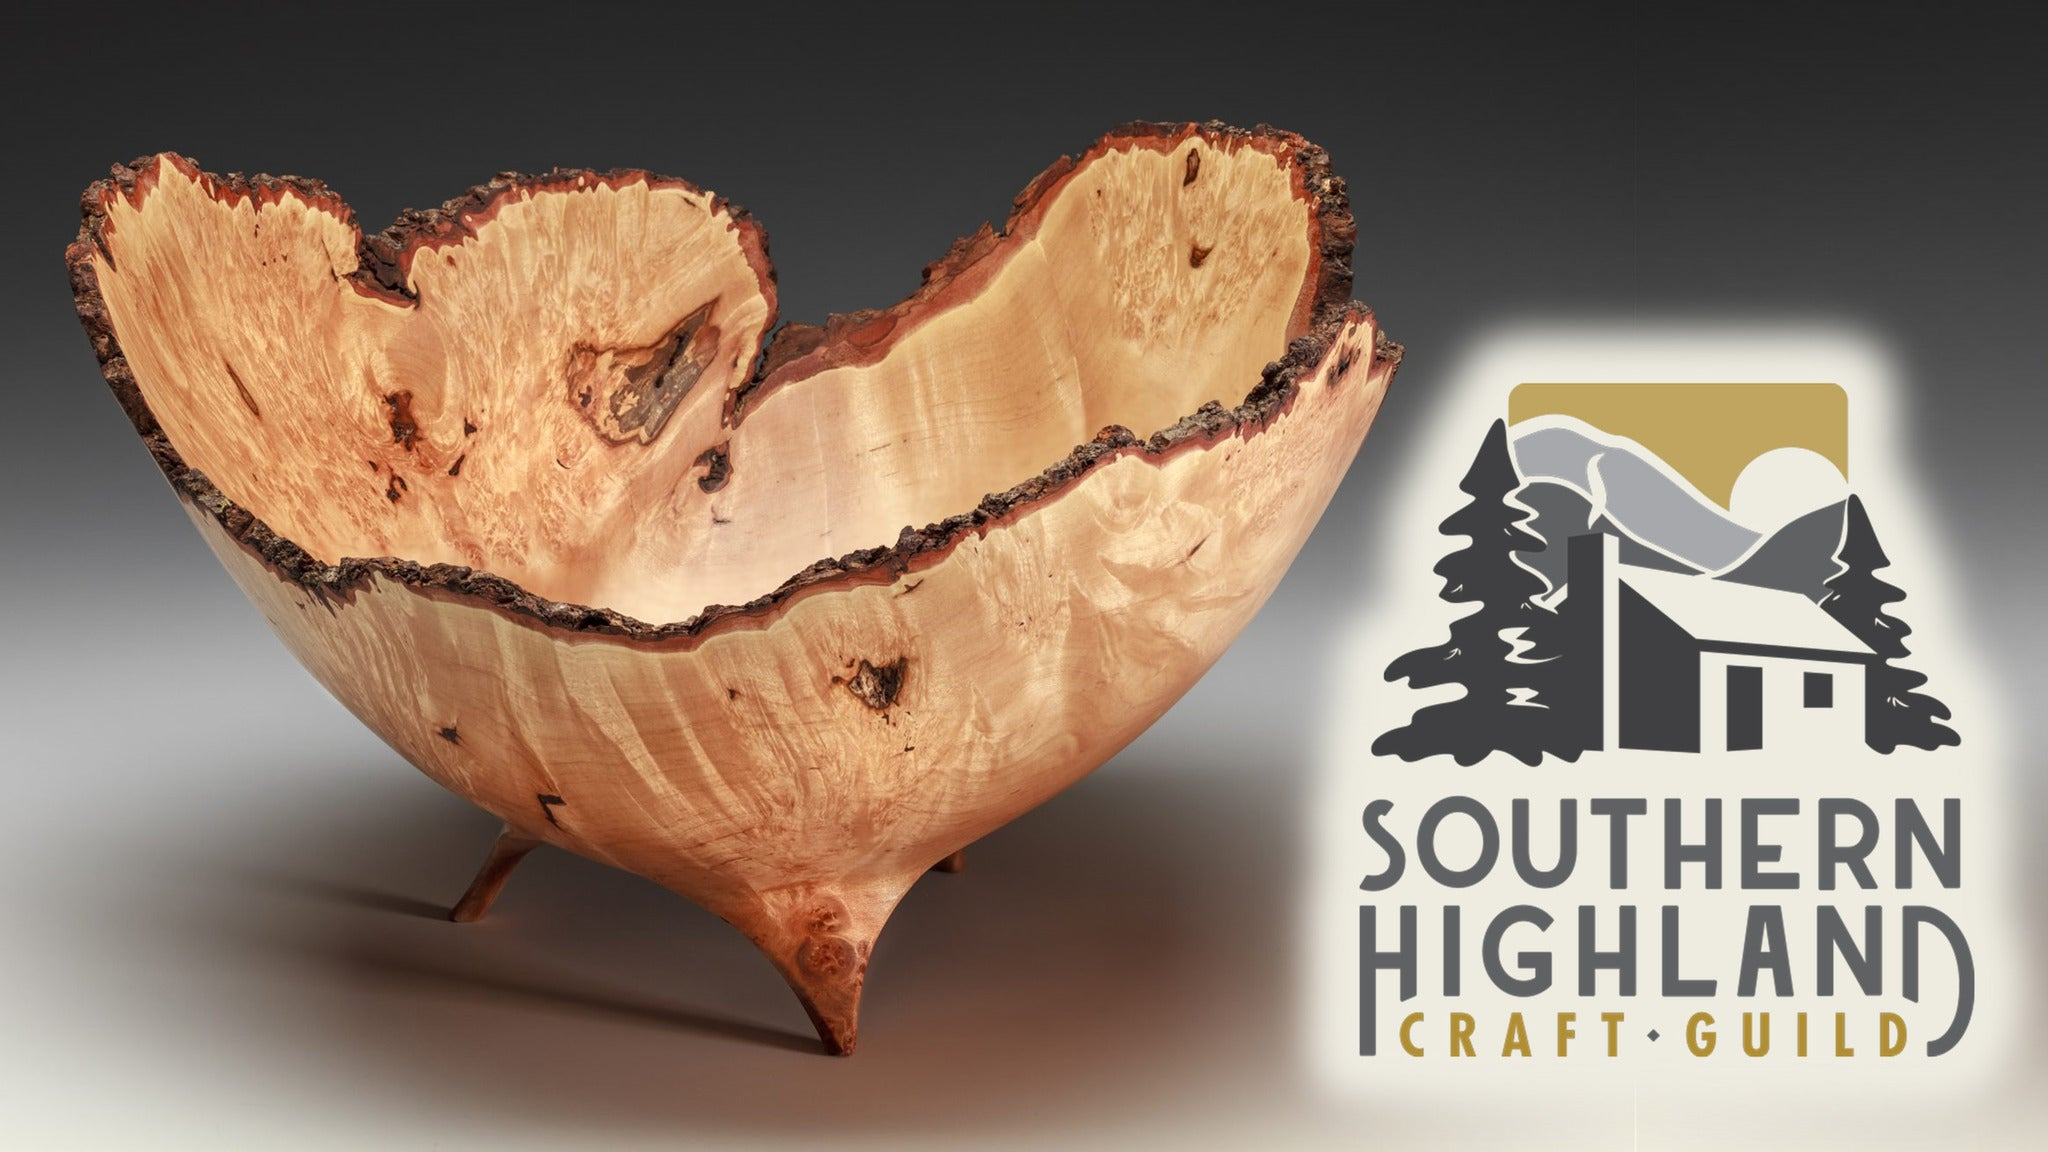 Craft Fair of the Southern Highlands - THURSDAY